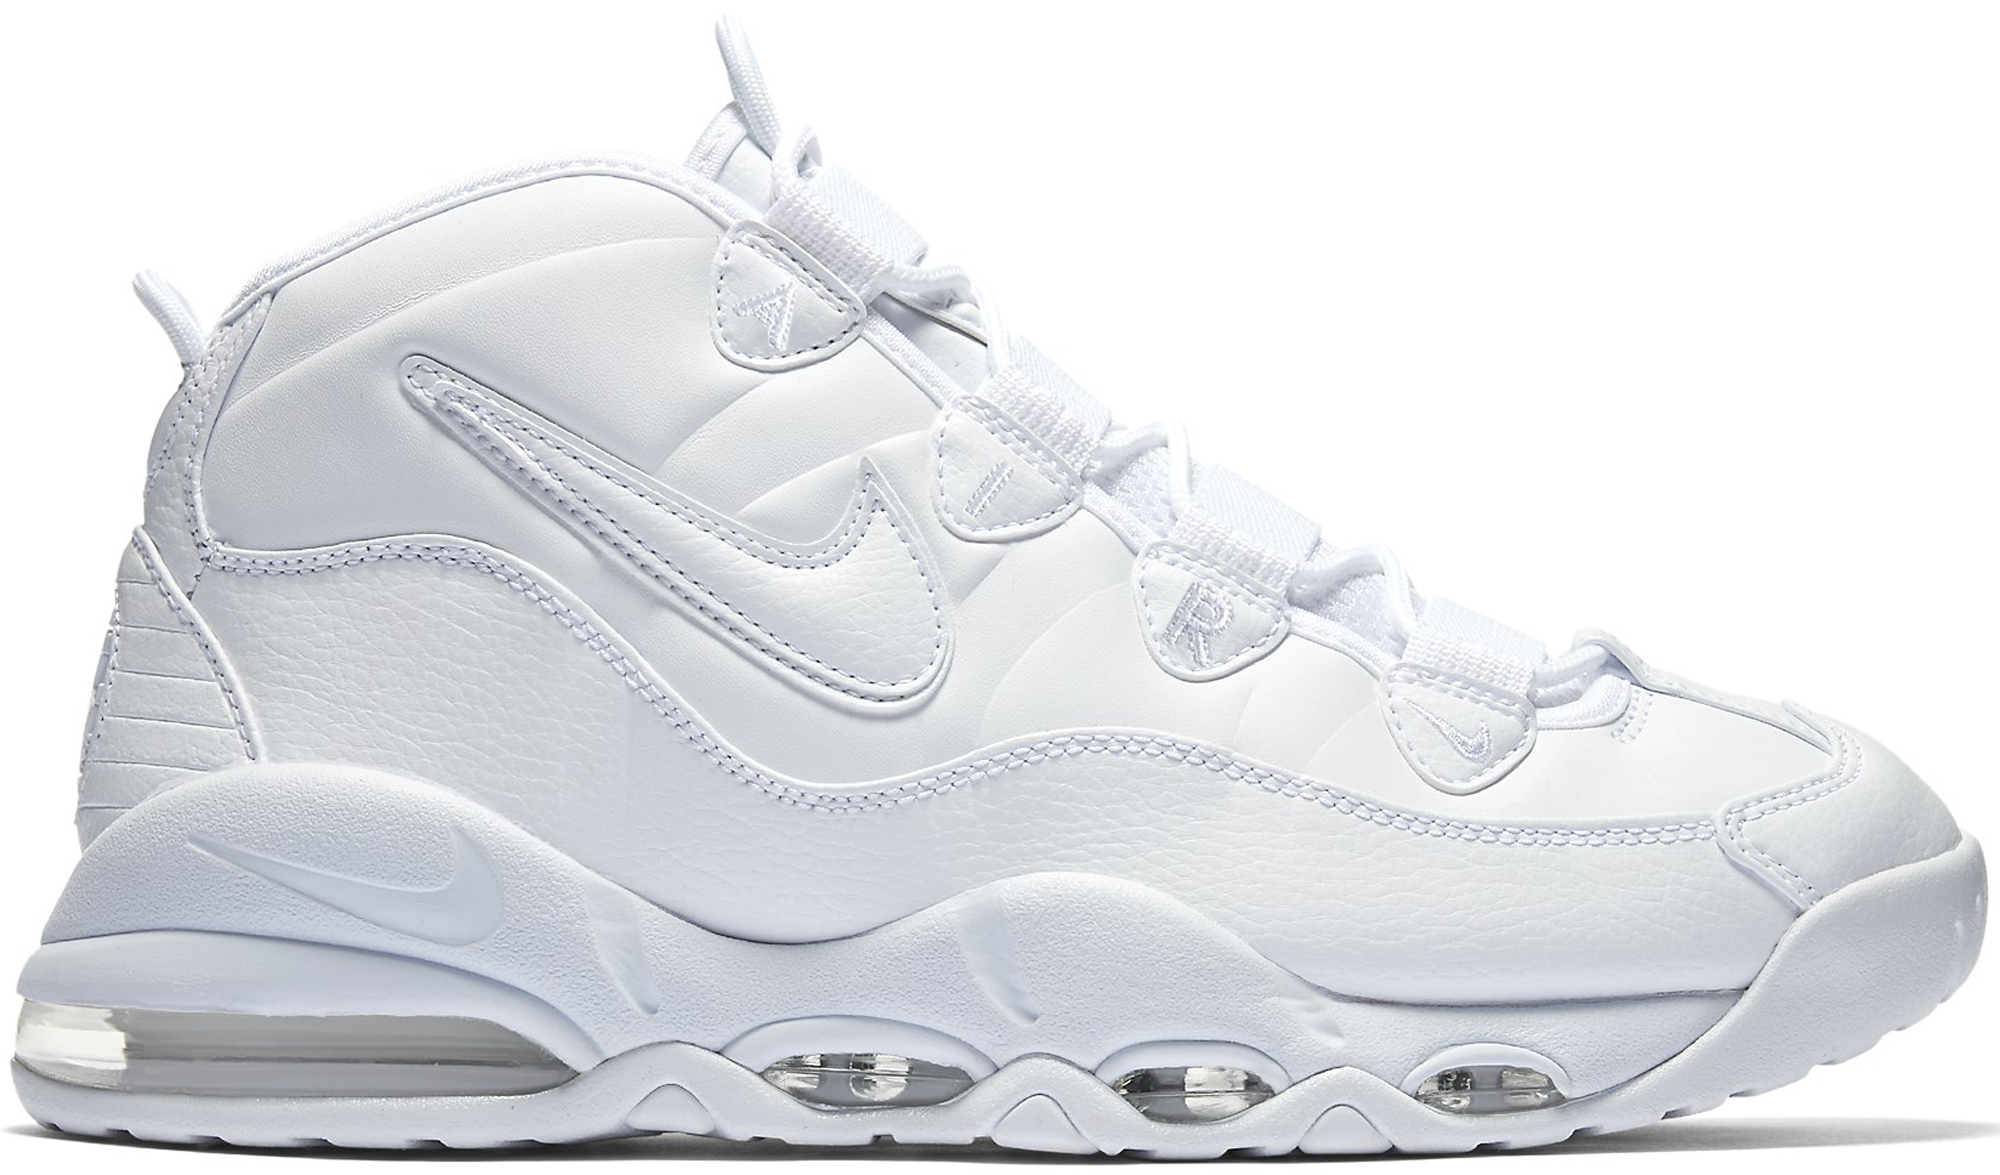 Air Max Uptempo 95 Coloris Curty